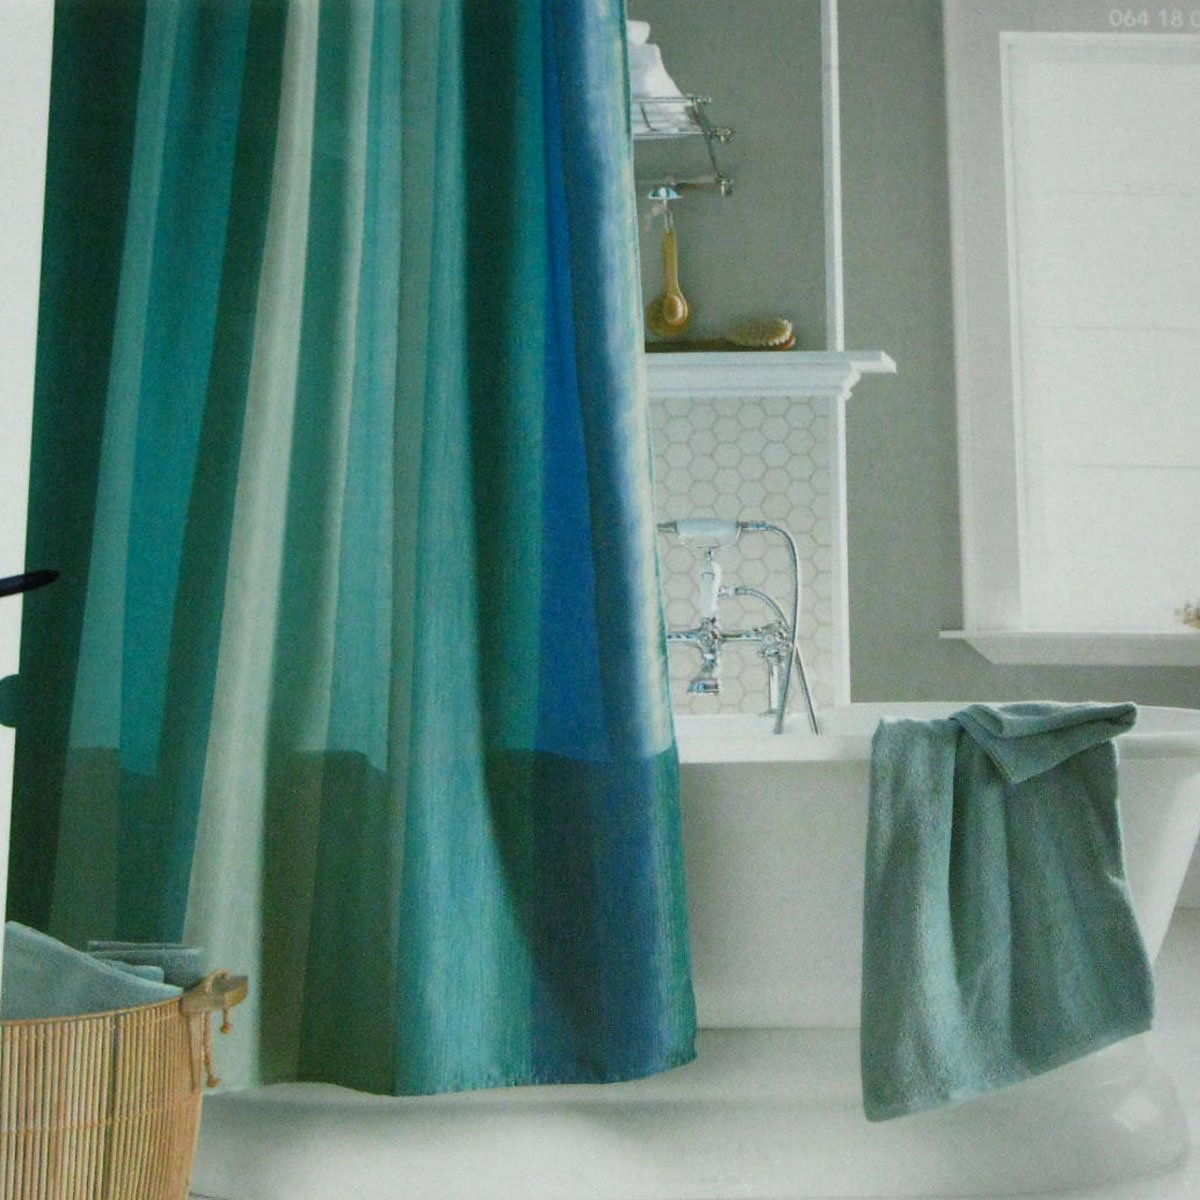 Target AQUAMARINE MULTISTRIPE BLUE Aqua Green Fabric Shower Curtain ...